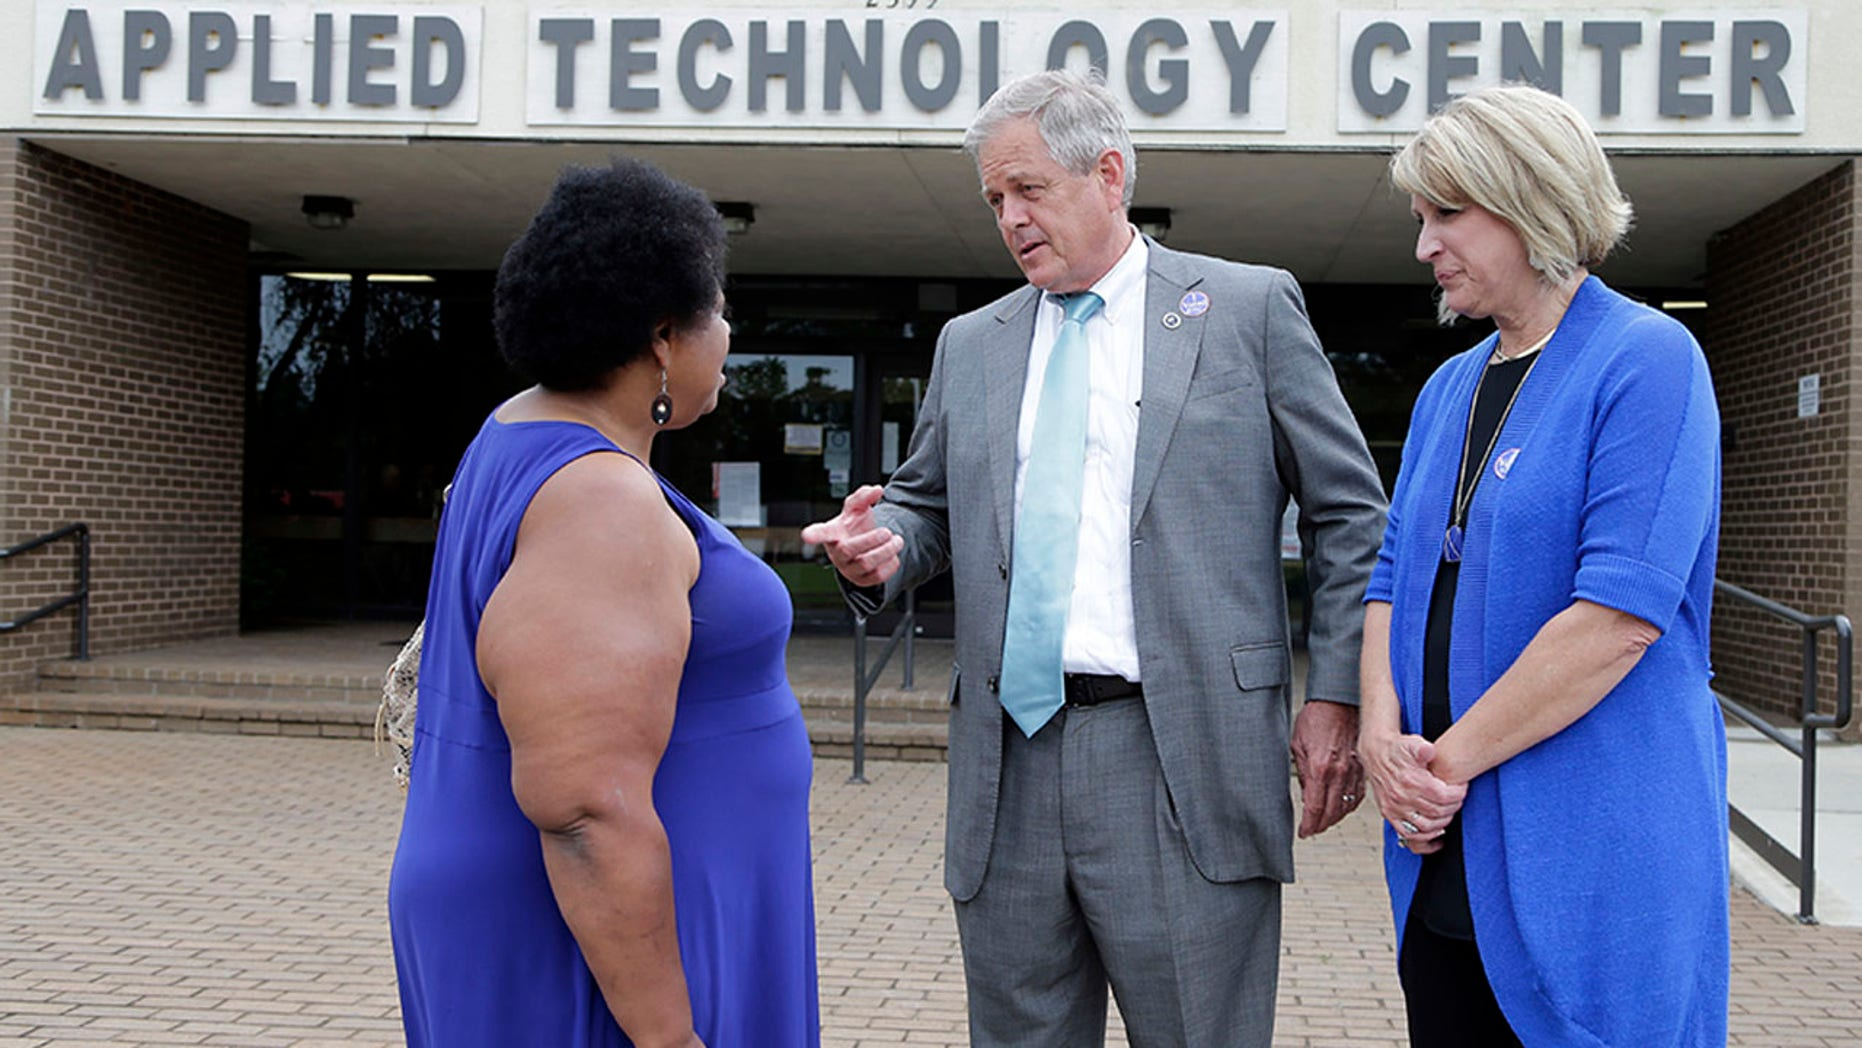 Republican candidate for U.S. Congress Ralph Norman, center, speaks with Gladys Jackson, left, as Norman's wife, Elaine, right, looks on at a polling place in South Carolina's 5th Congressional District in Rock Hill, S.C.